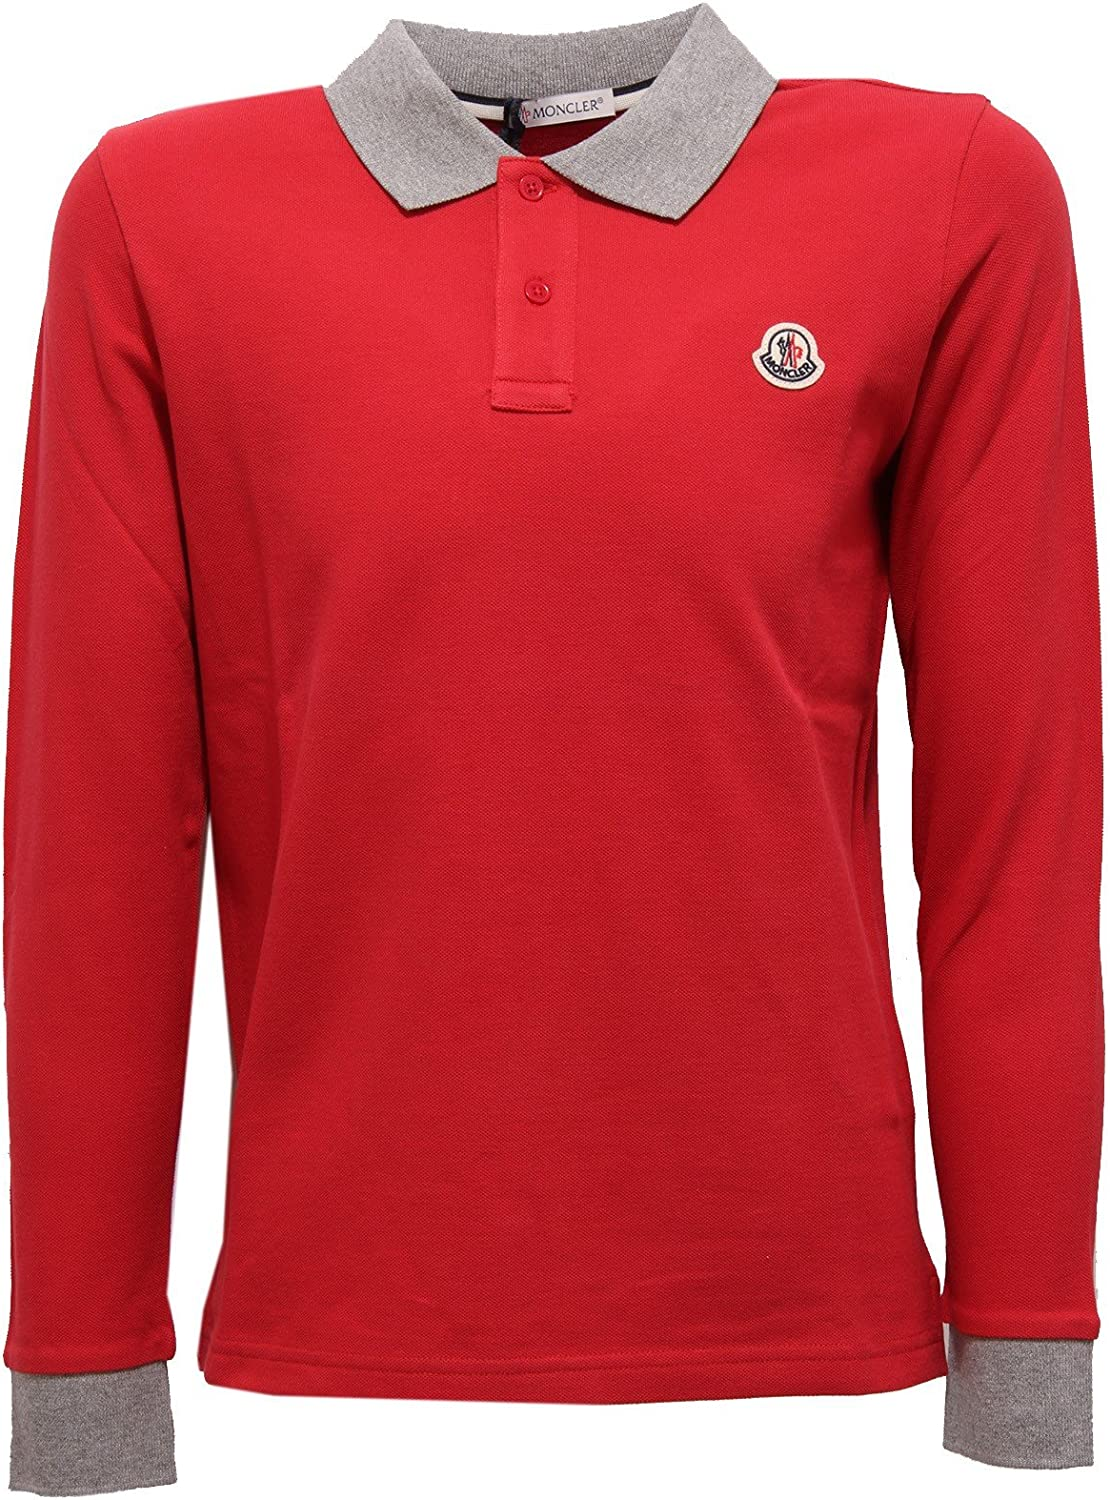 MONCLER 3314V Polo Bimbo Rosso Polo t-Shirt Kid Boy: Amazon.es ...